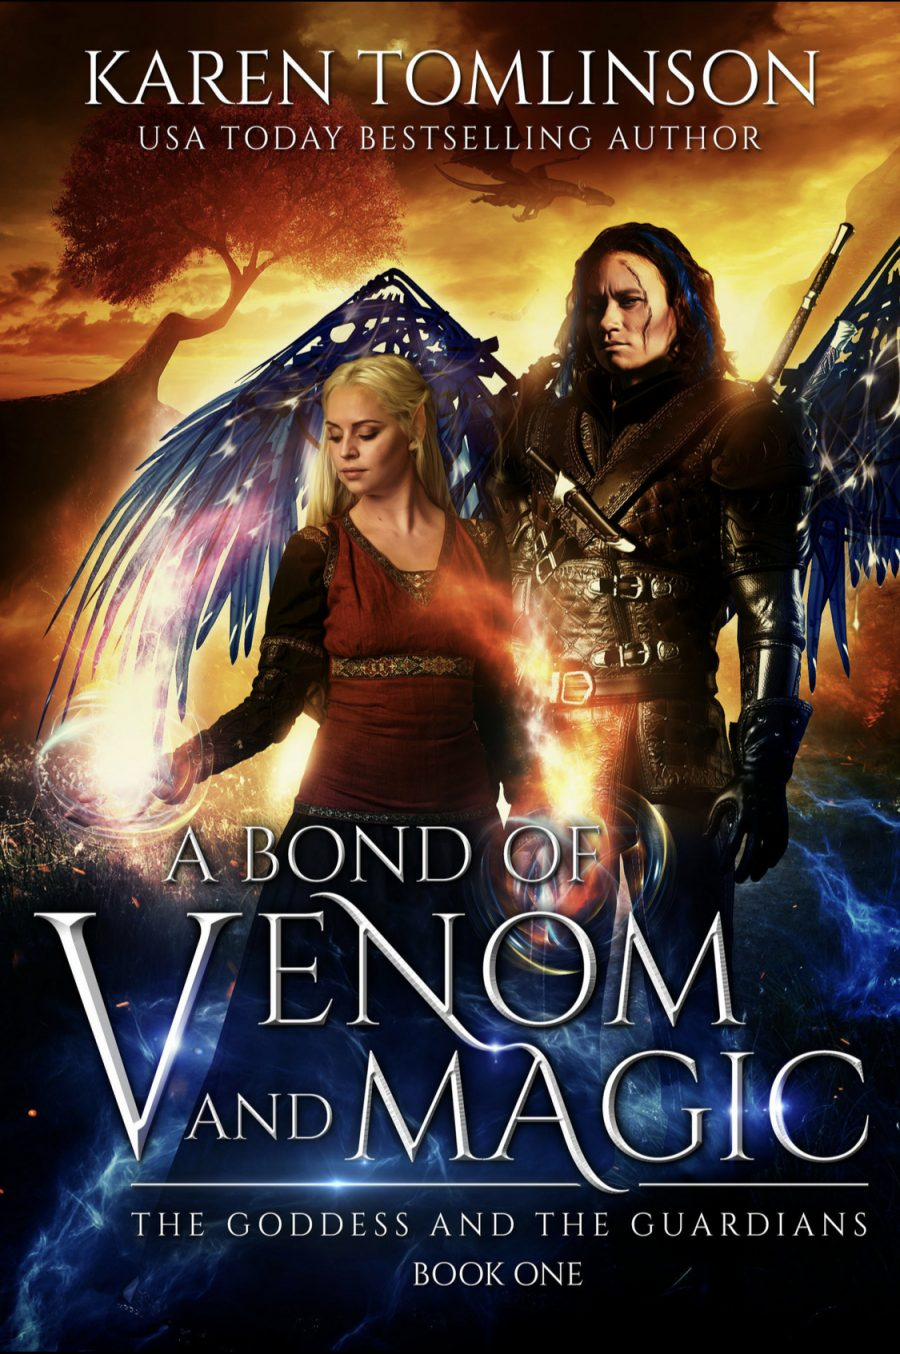 A Bond of Venom and Magic by Karen Tomlinson - A Book Review #BookReview #Fantasy #SeriesComplete #UpperYA #KindleUnlimited #KU #4Stars